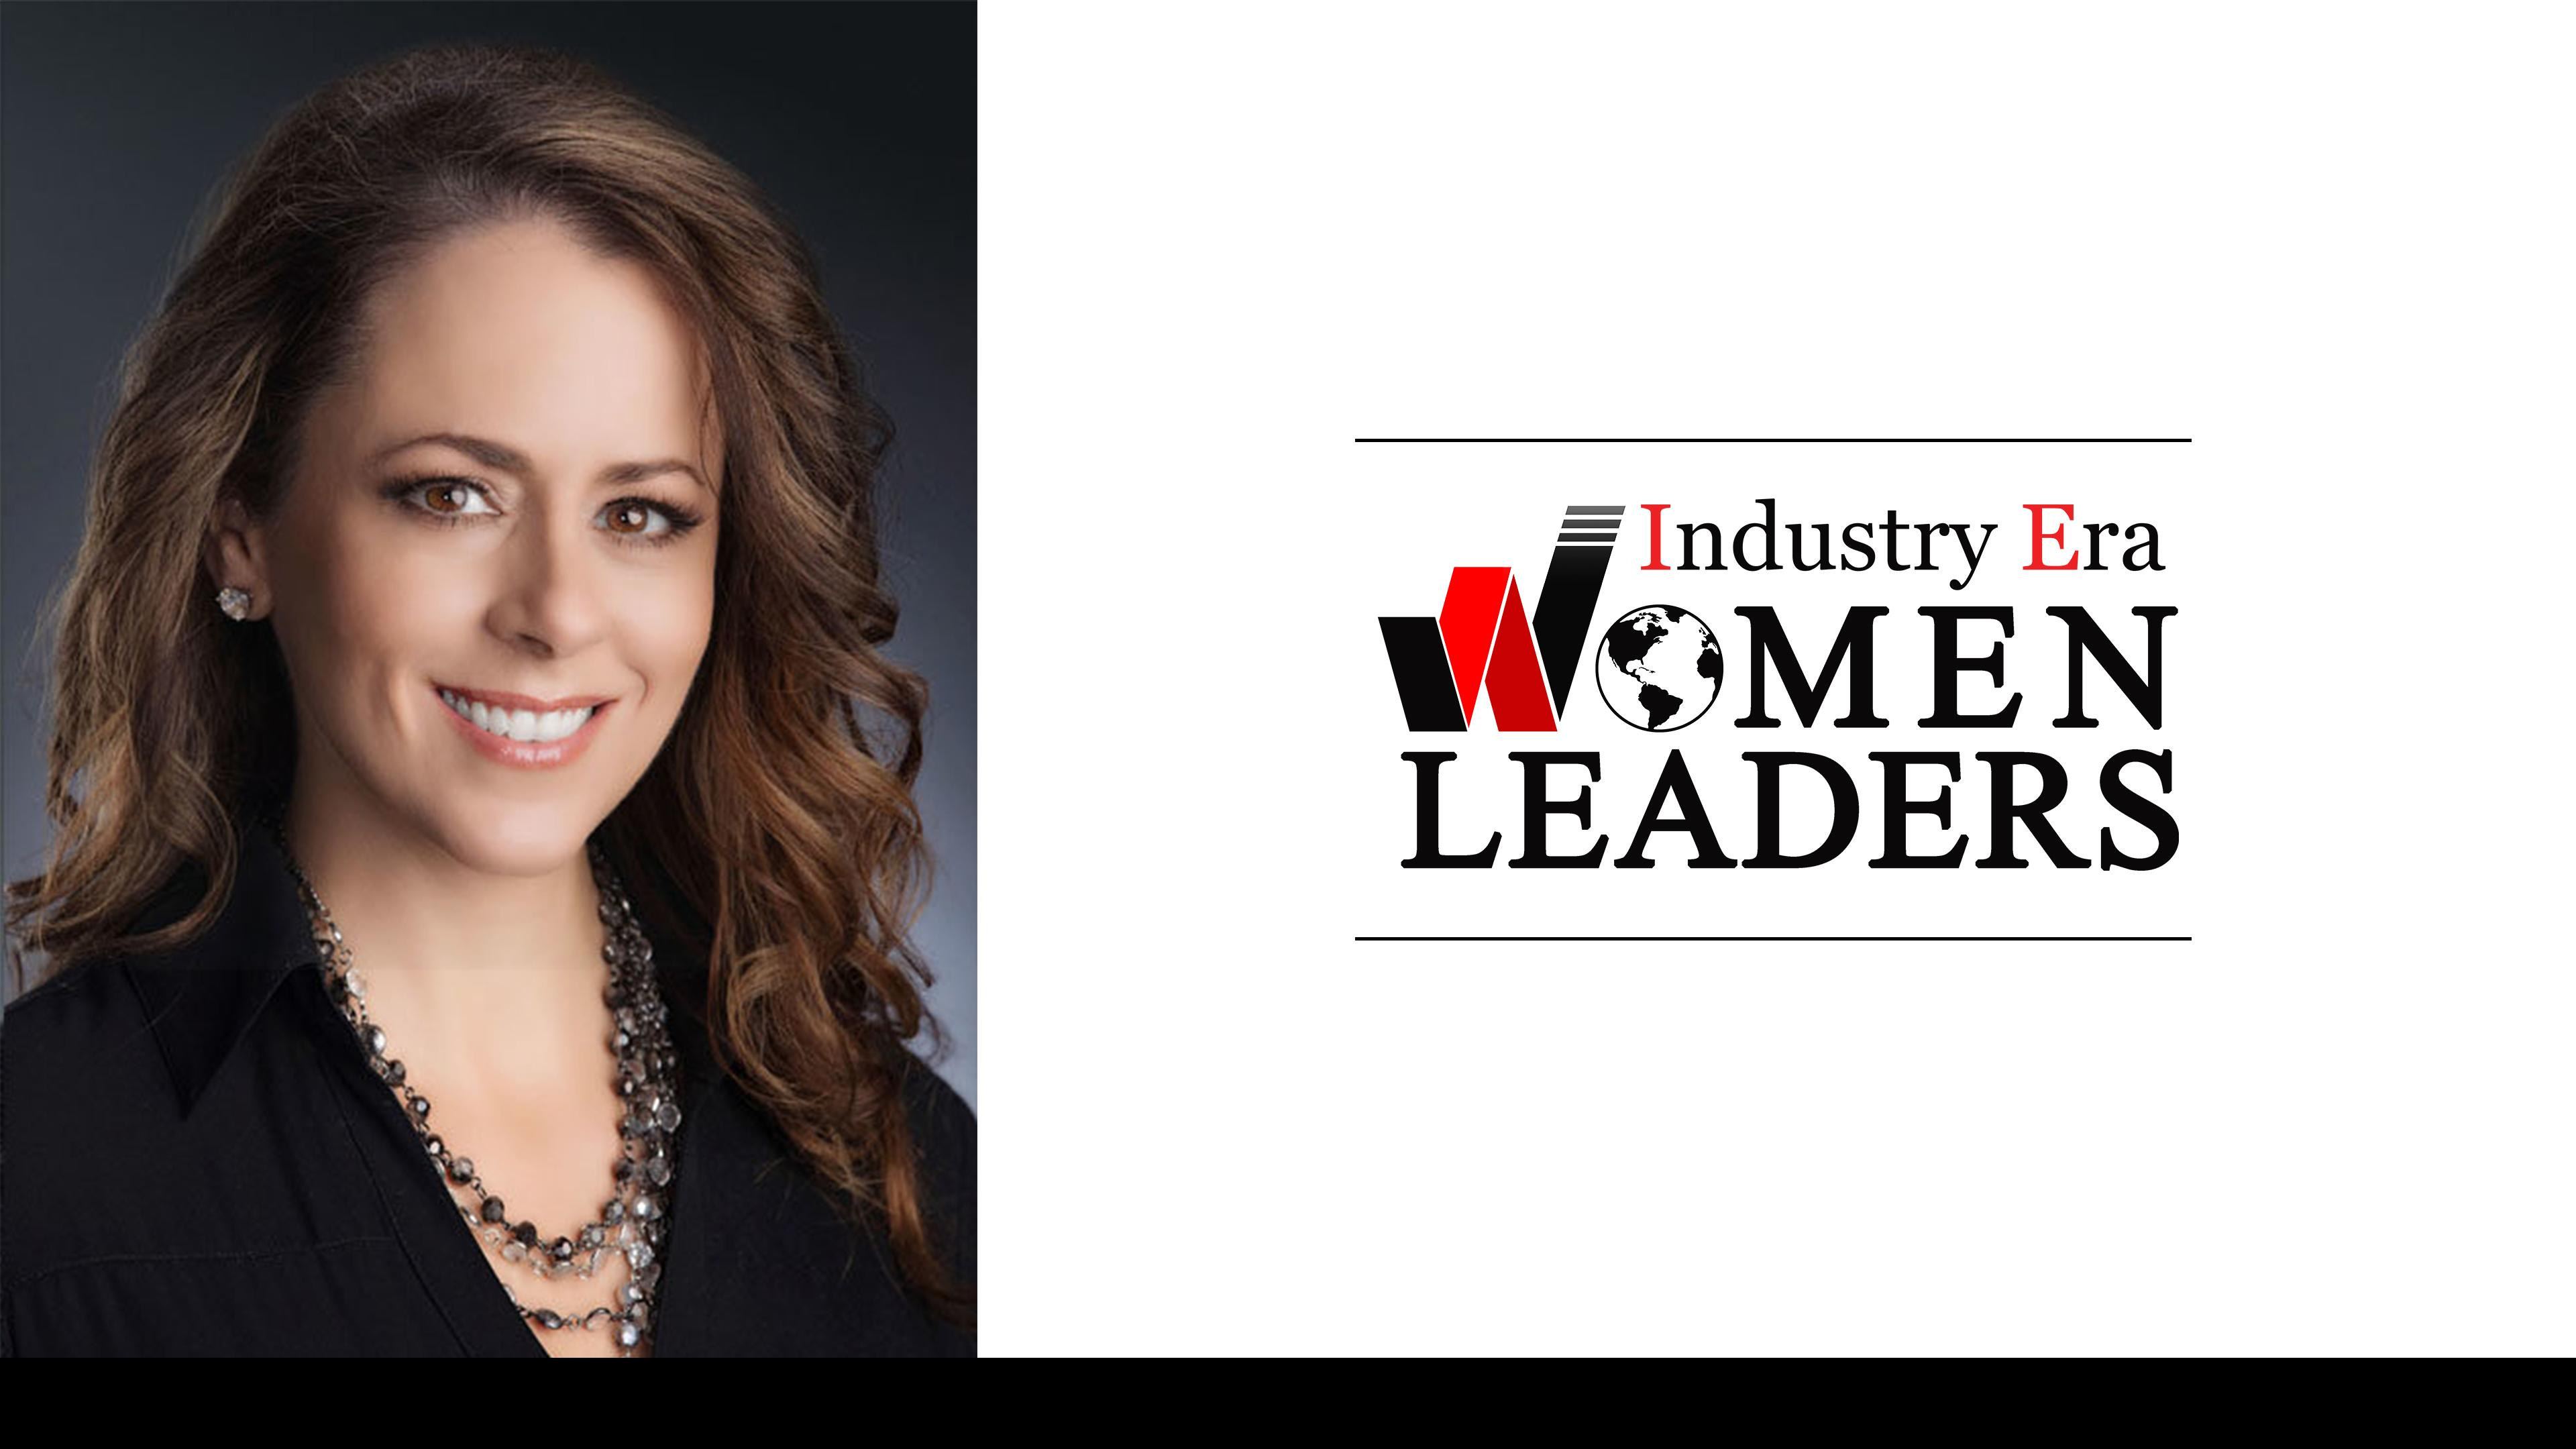 Switch News: Missy Young Named in IERA Women Leaders 10 Best CIOs of 2021